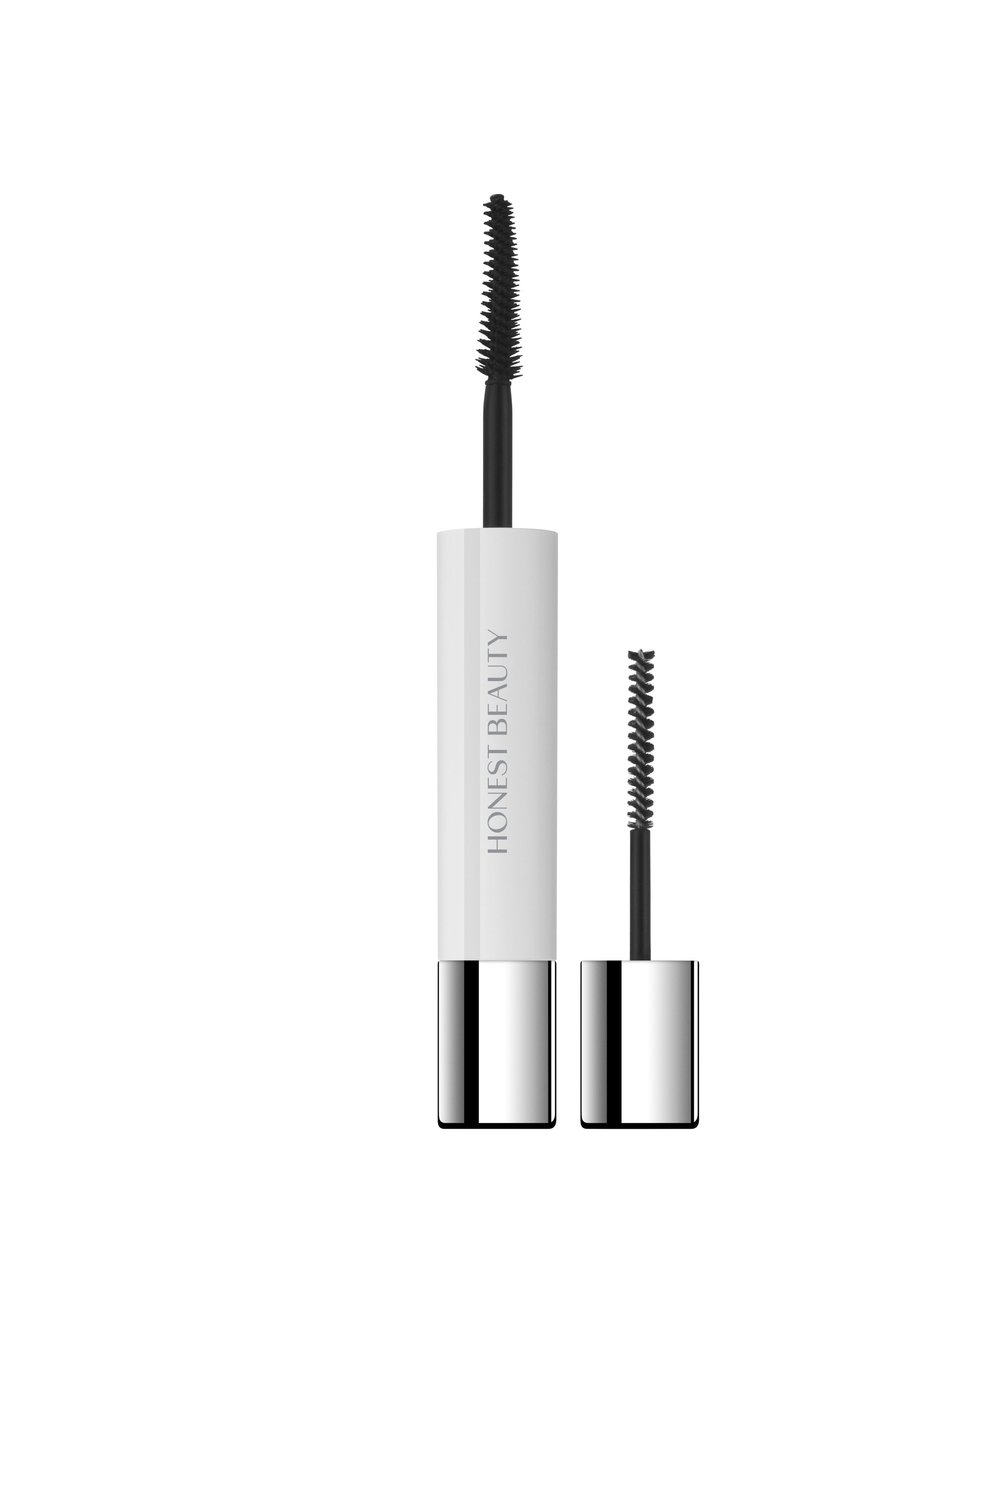 honest-beauty-truly-lash-mascara